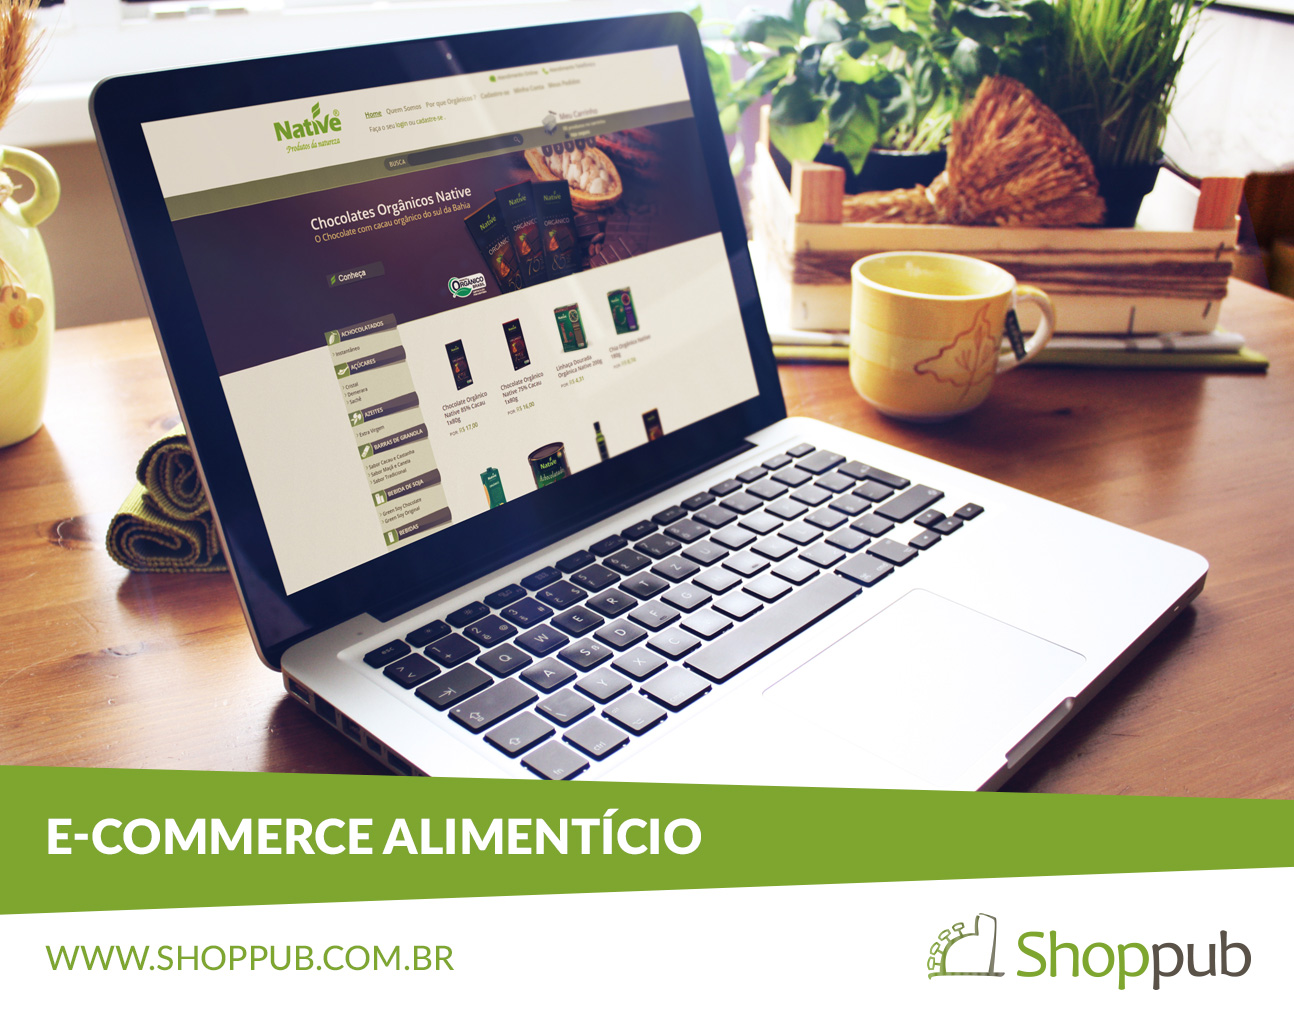 E-commerce alimentício